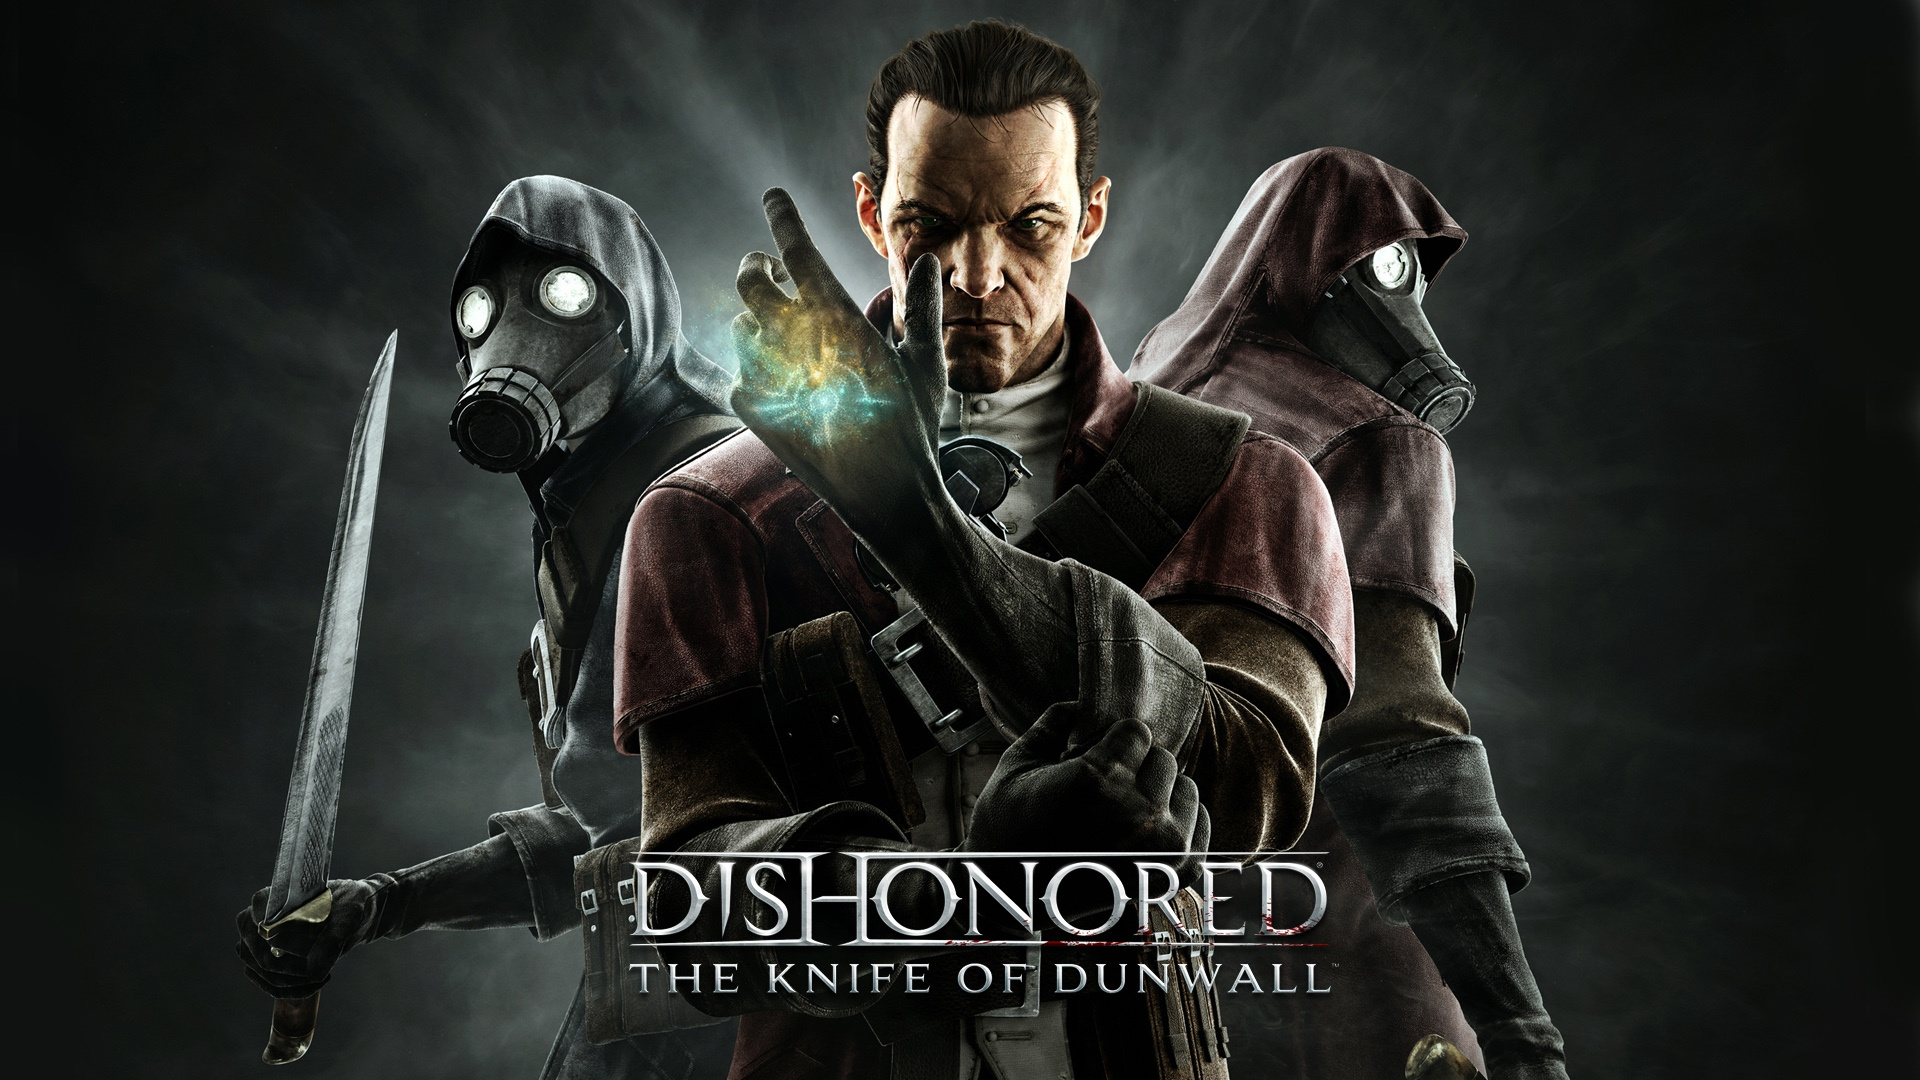 dishonored the knife of dunwall wallpapers in jpg format for free